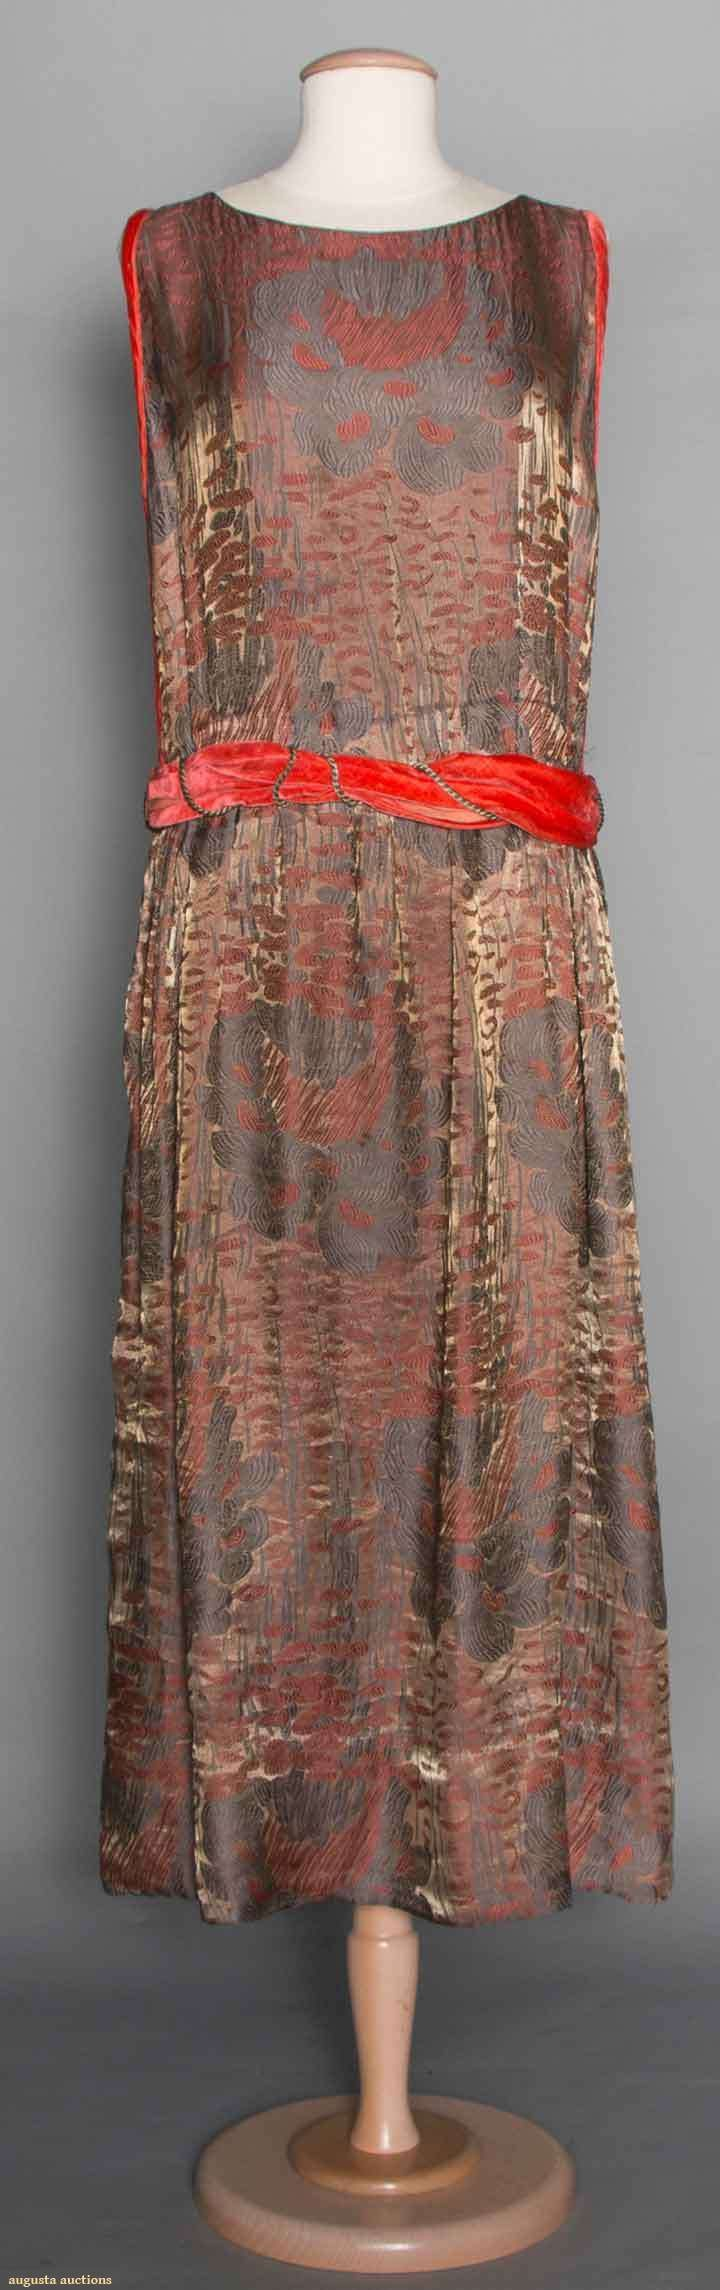 Pewter lame & coral silk brocade evening dress. For upcoming vintage and antique clothing auction. #1920s #vintagefashion